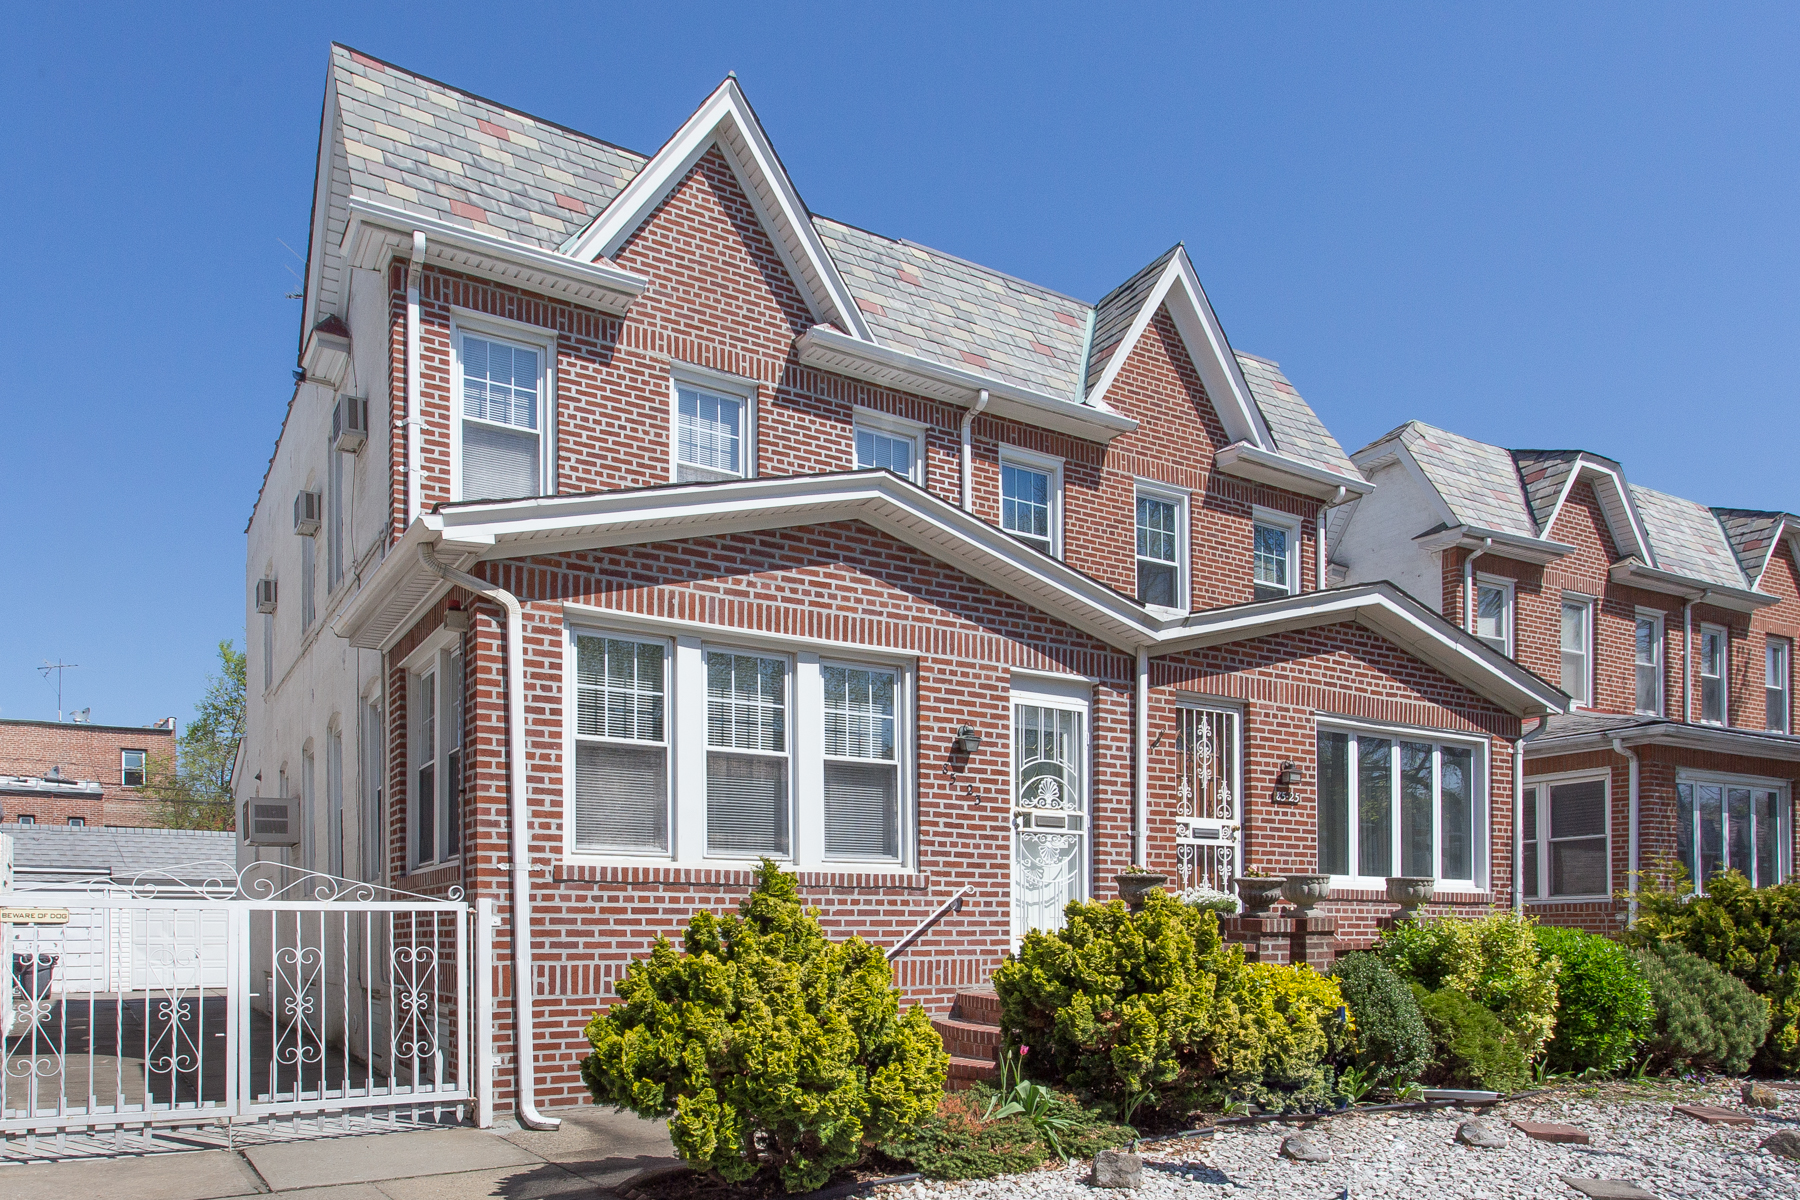 """Single Family Homes for Active at """"REGO PARK GEM"""" 85-23 67th Drive, Rego Park, Queens, New York 11374 United States"""